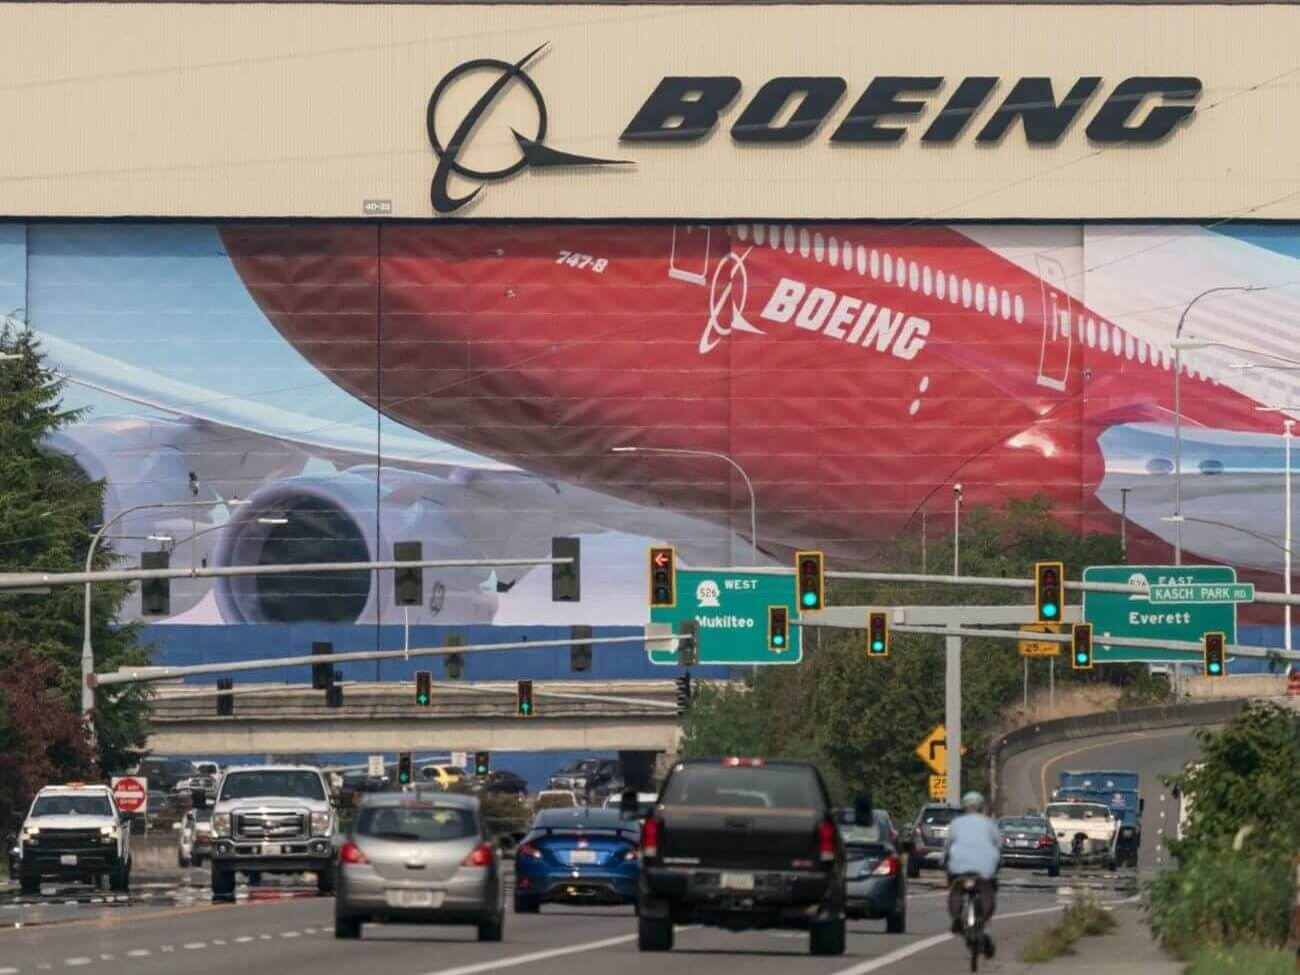 Boeing Is the Most recent Firm to Trail a Hostile Industry Ambiance